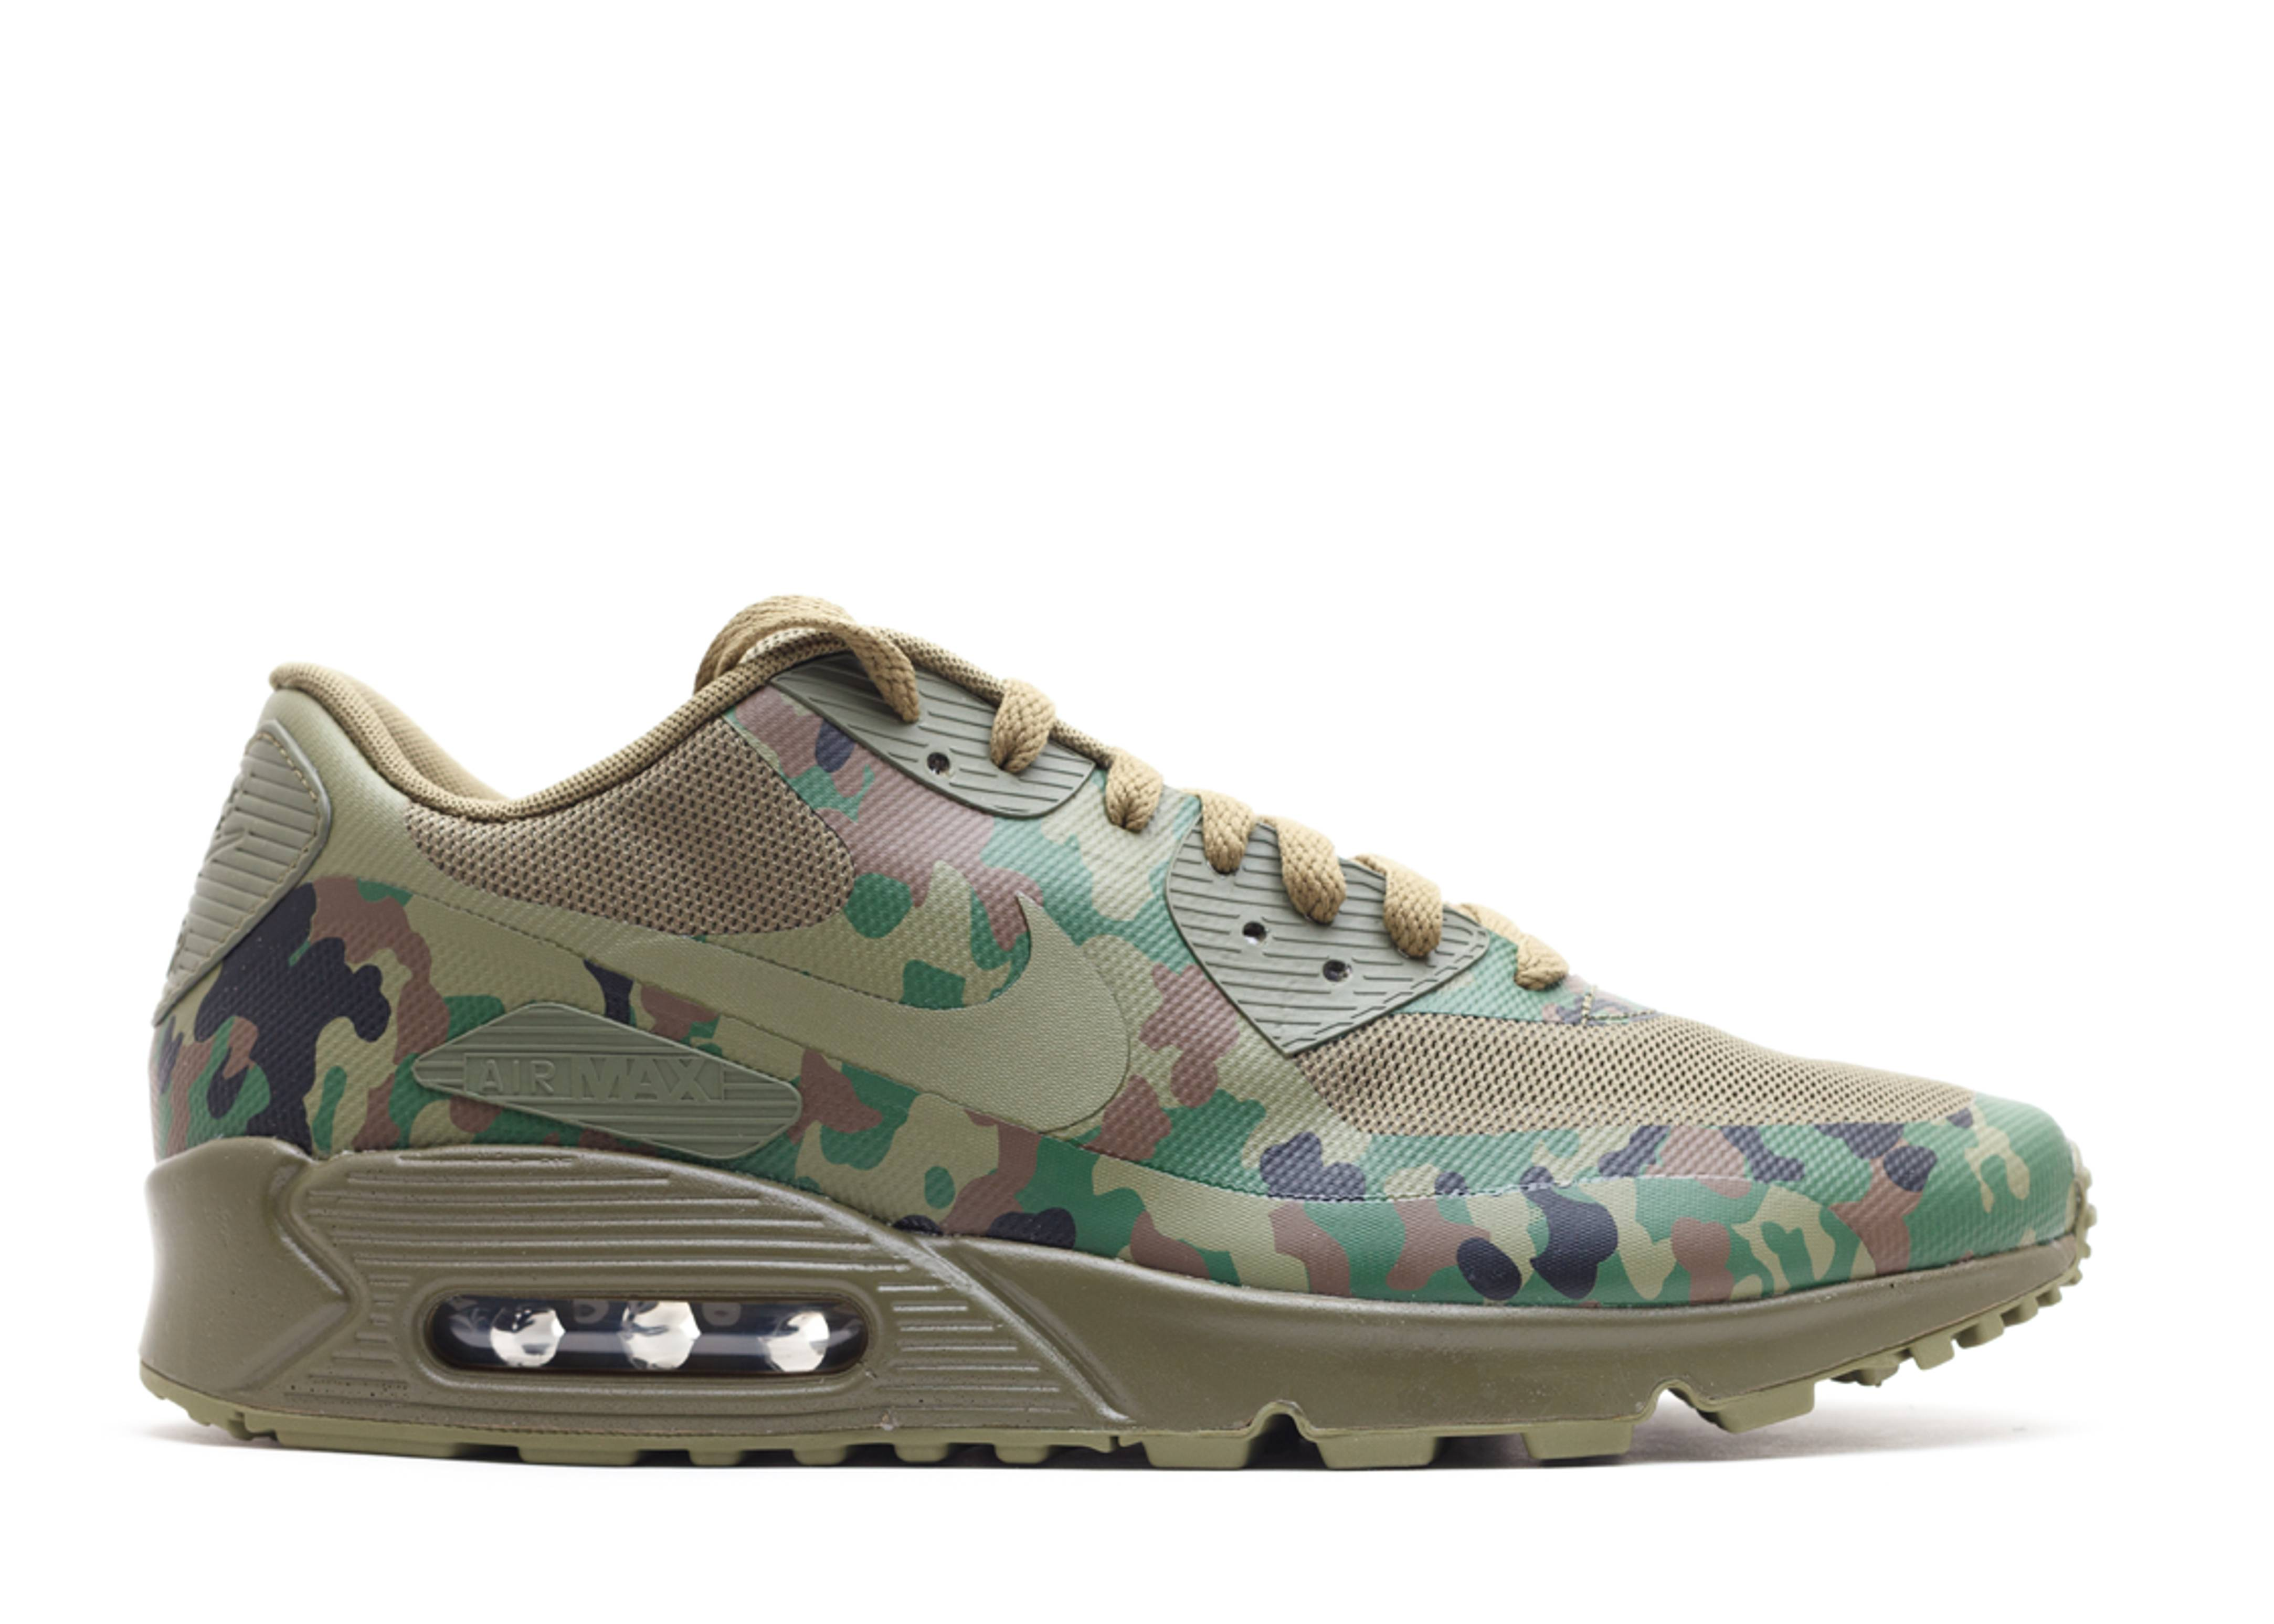 air max 90 japan sp camo nike 624728 220 pale. Black Bedroom Furniture Sets. Home Design Ideas